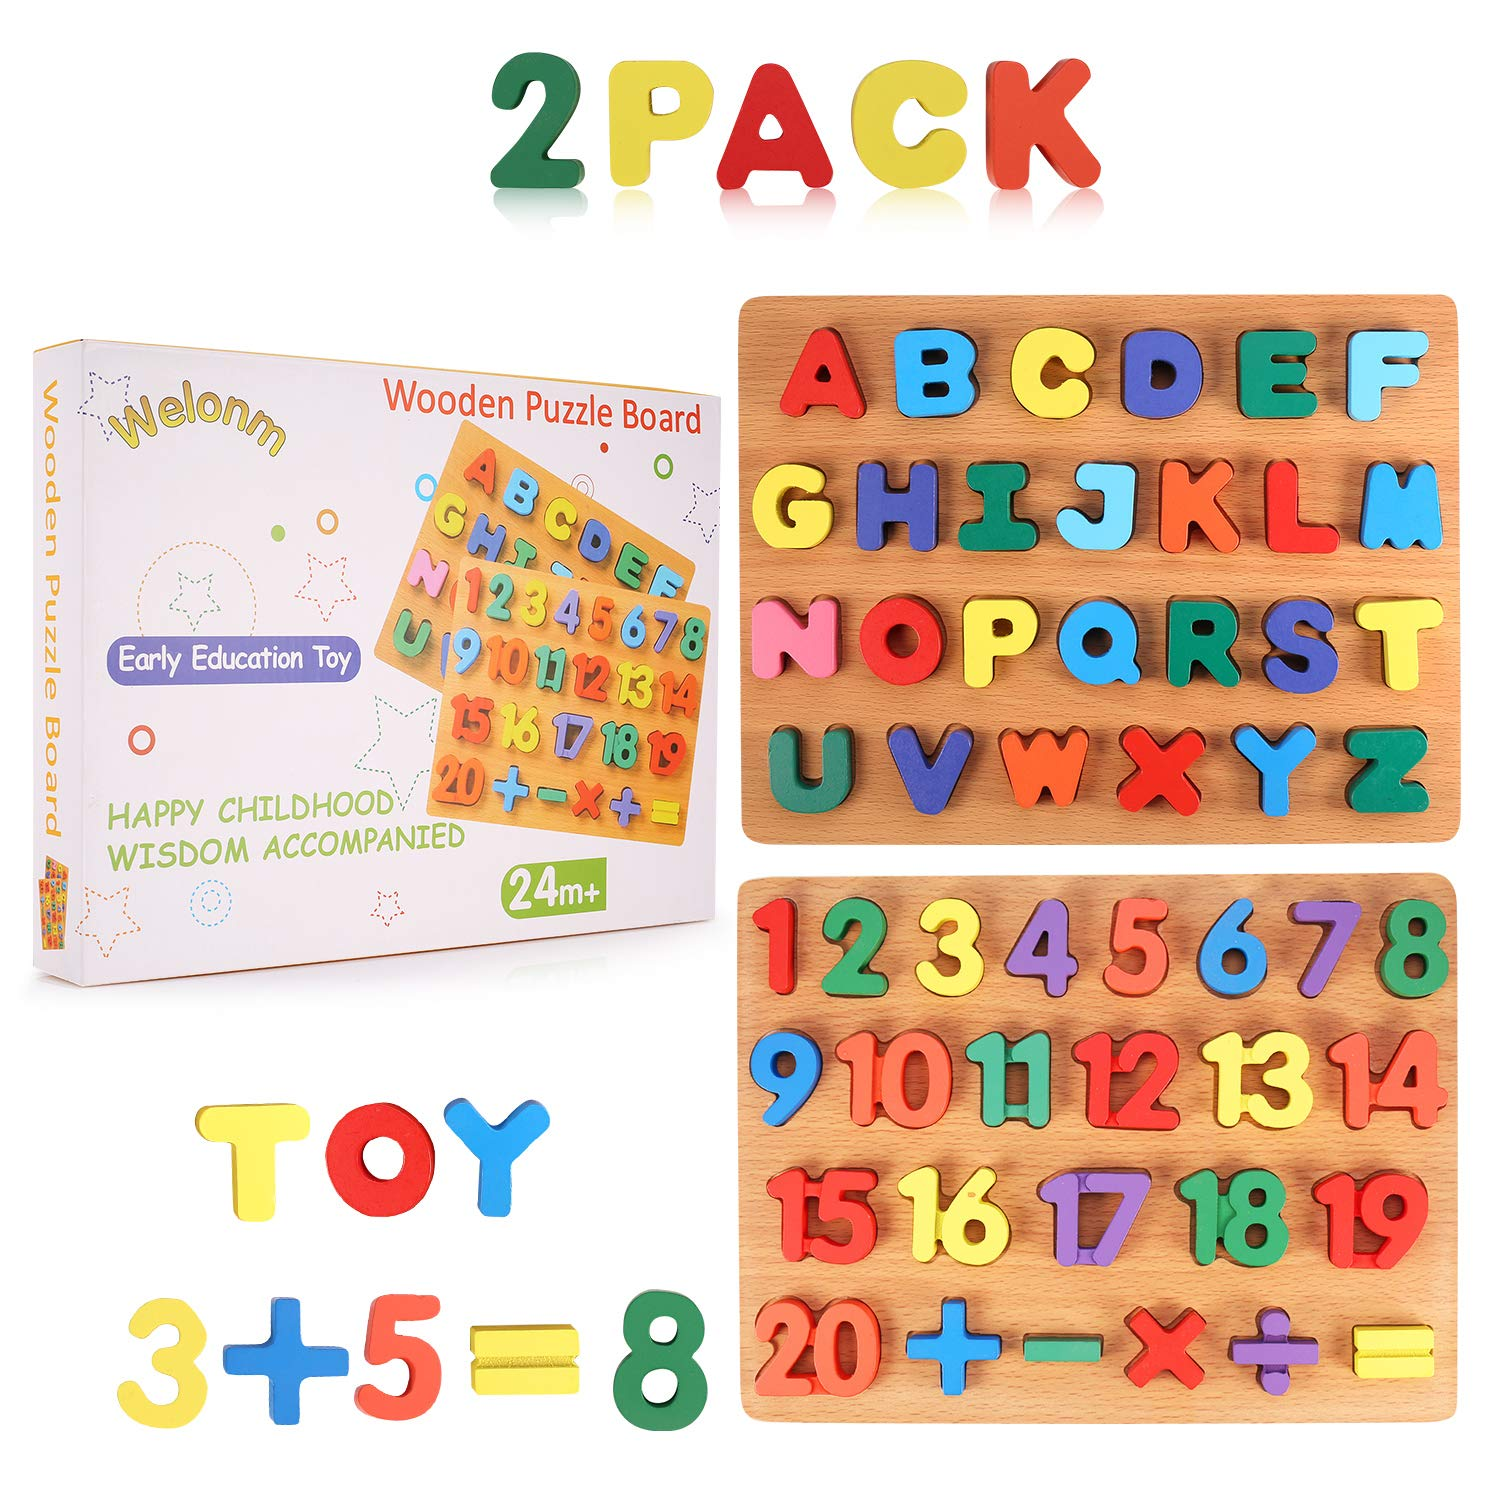 Wooden Peg Puzzles Kid Toys Set - Big Alphabet & Numbers ABC Toddlers Puzzles Board 2-Pack for Boys Girls' Preschool Educational Kindergarten Learning Toy